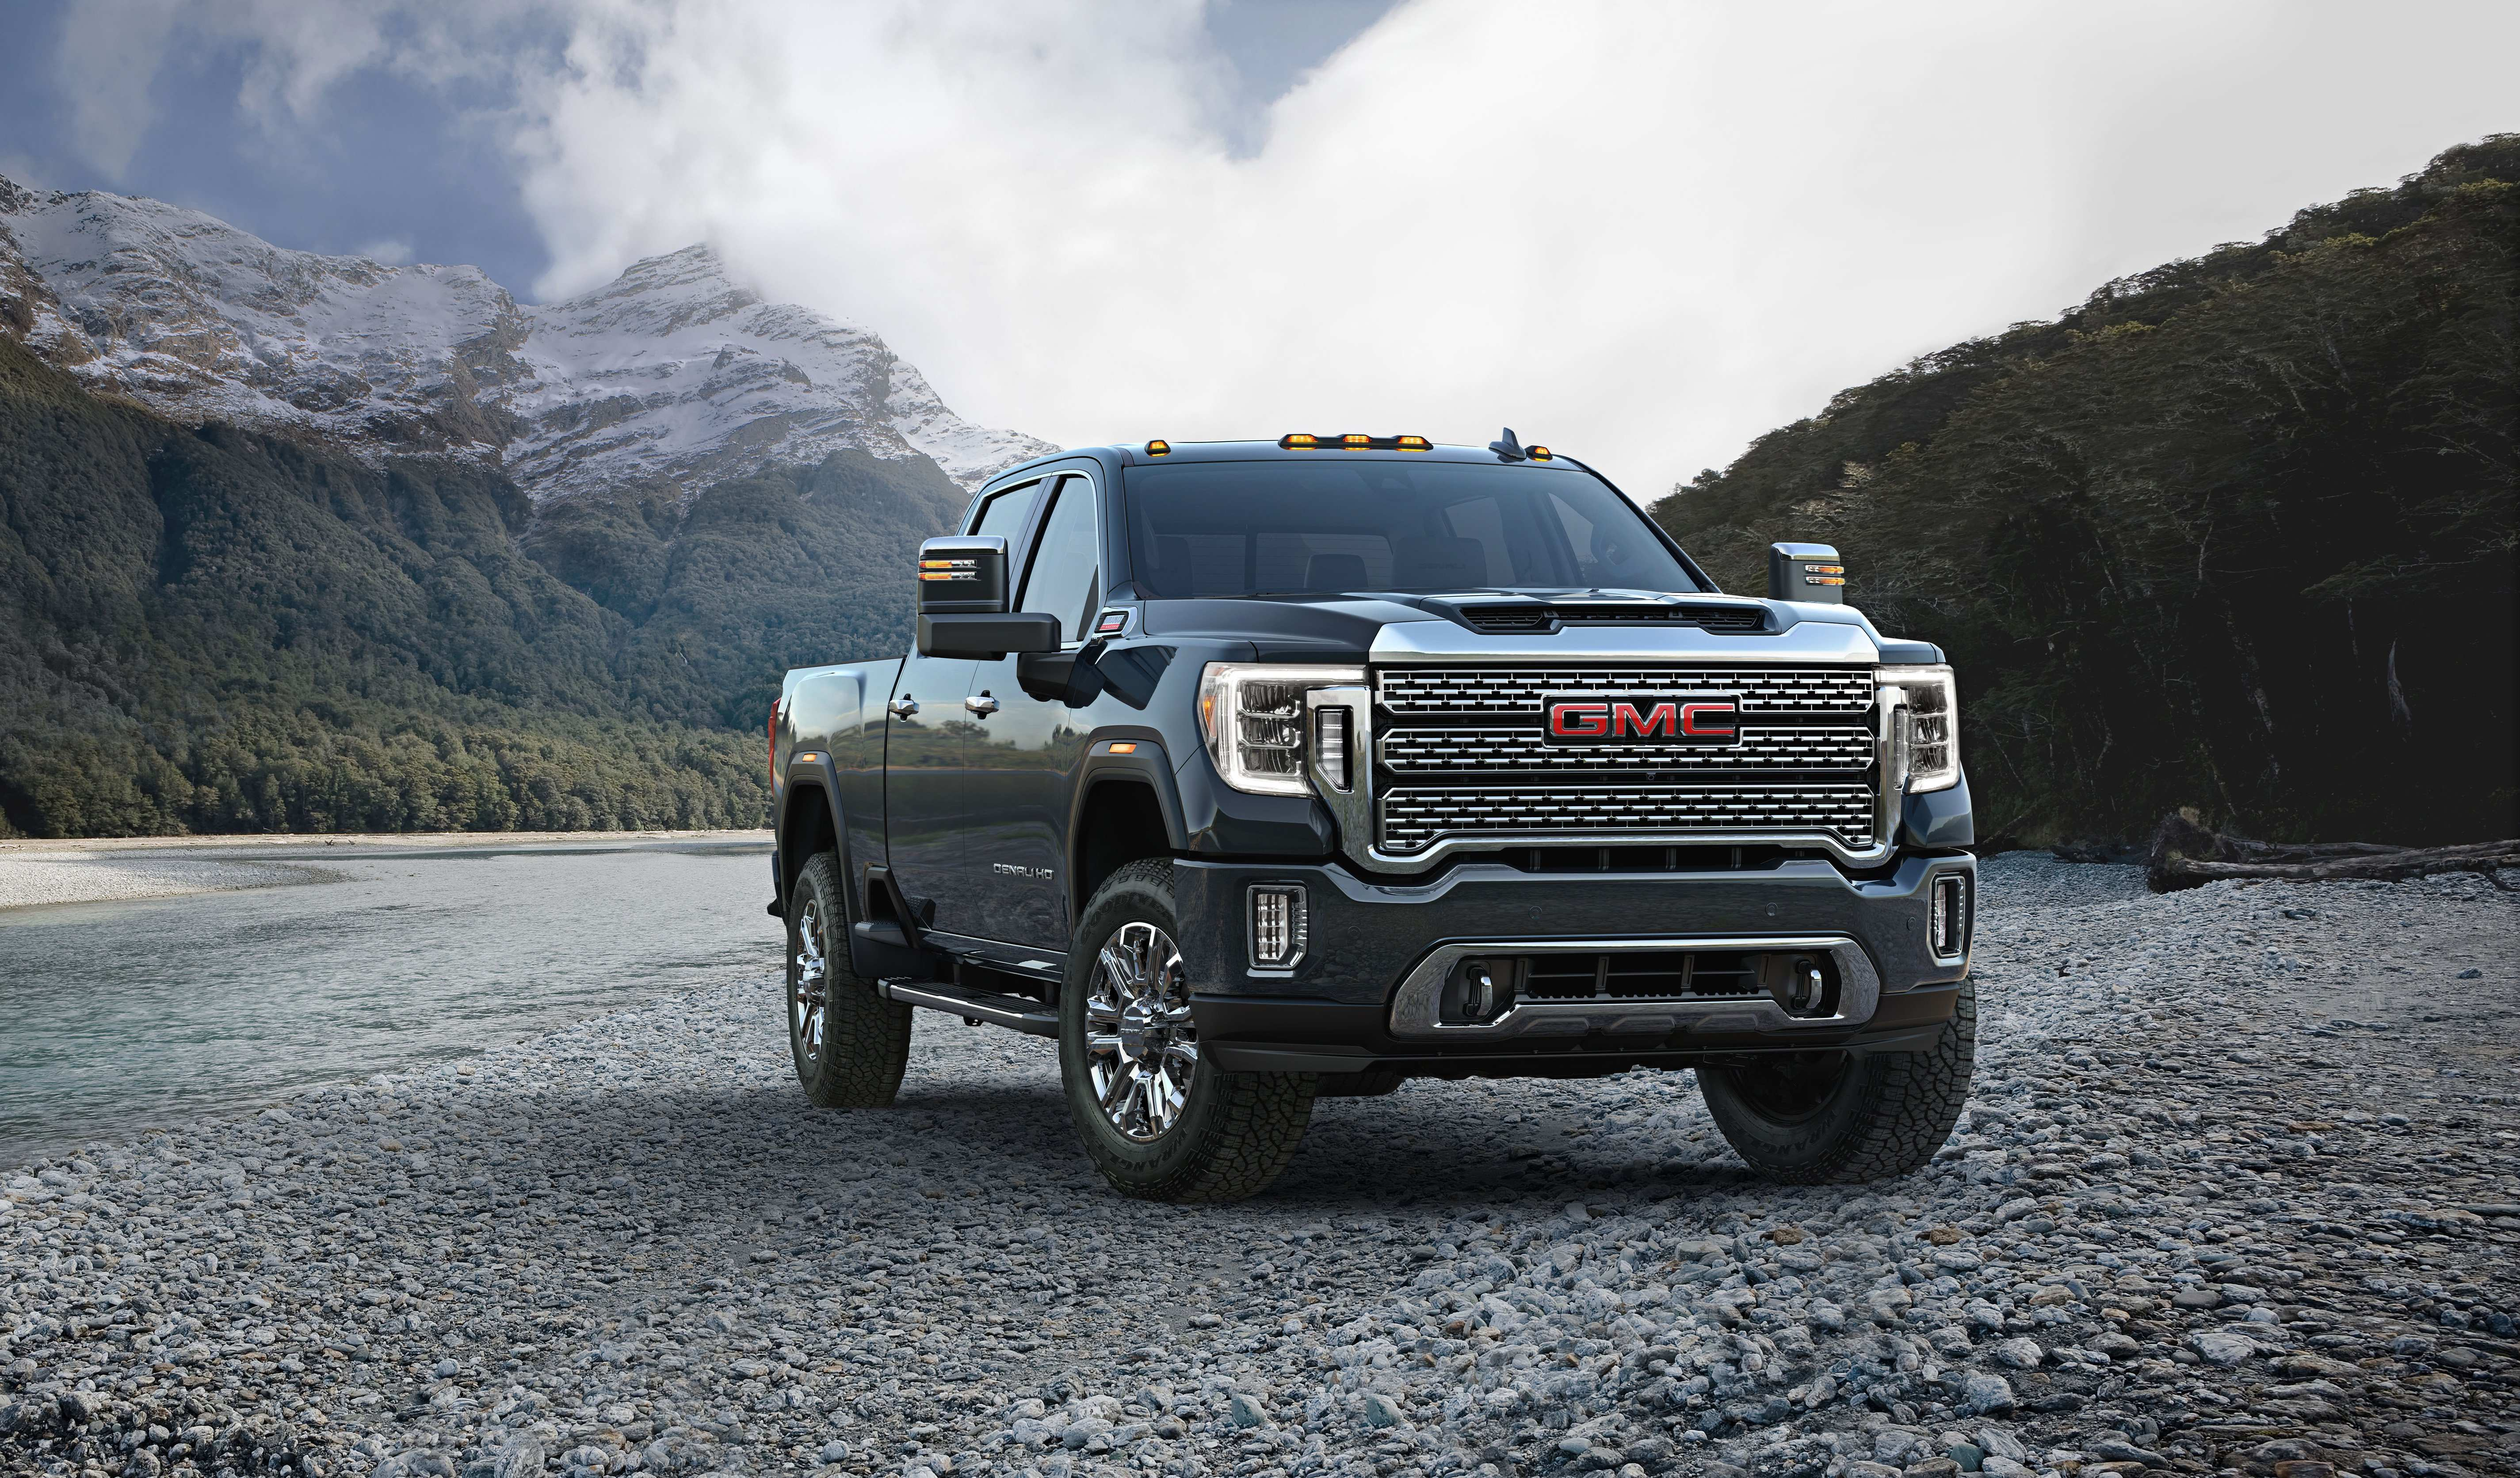 64 New When Will The 2020 Gmc Denali Be Available Research New for When Will The 2020 Gmc Denali Be Available